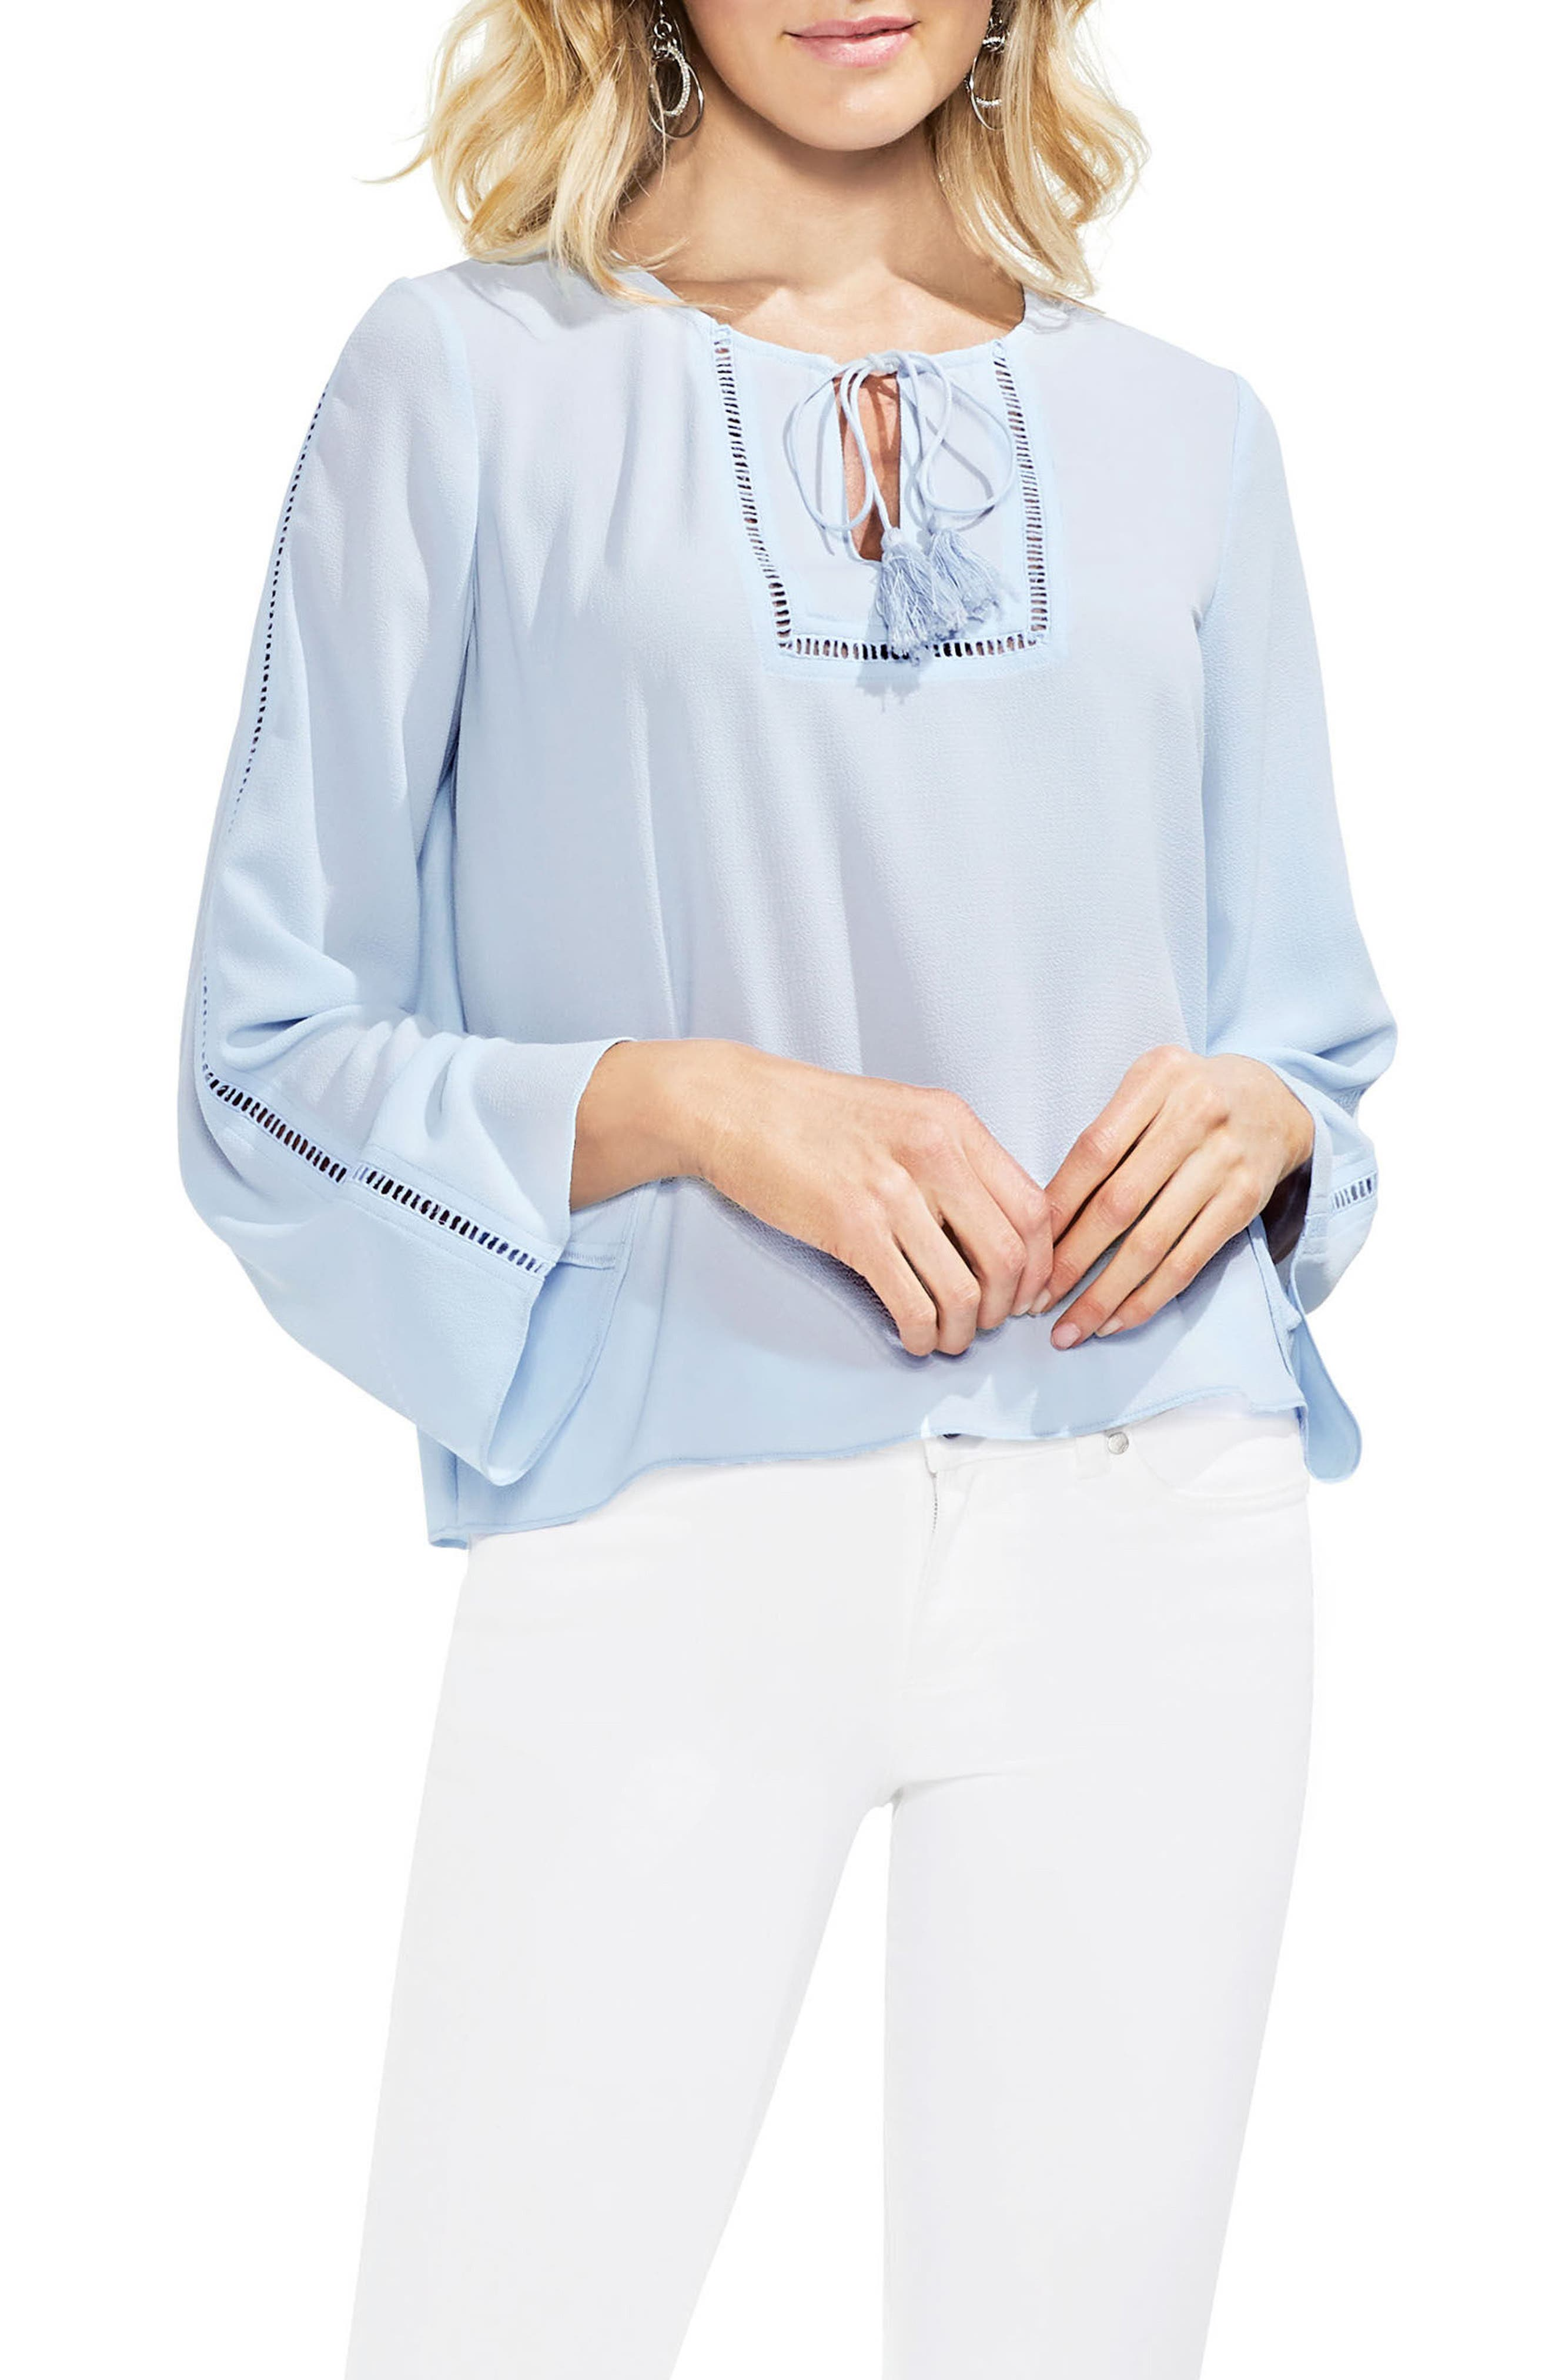 Bell Sleeve Blouse,                             Main thumbnail 1, color,                             Dew Blue